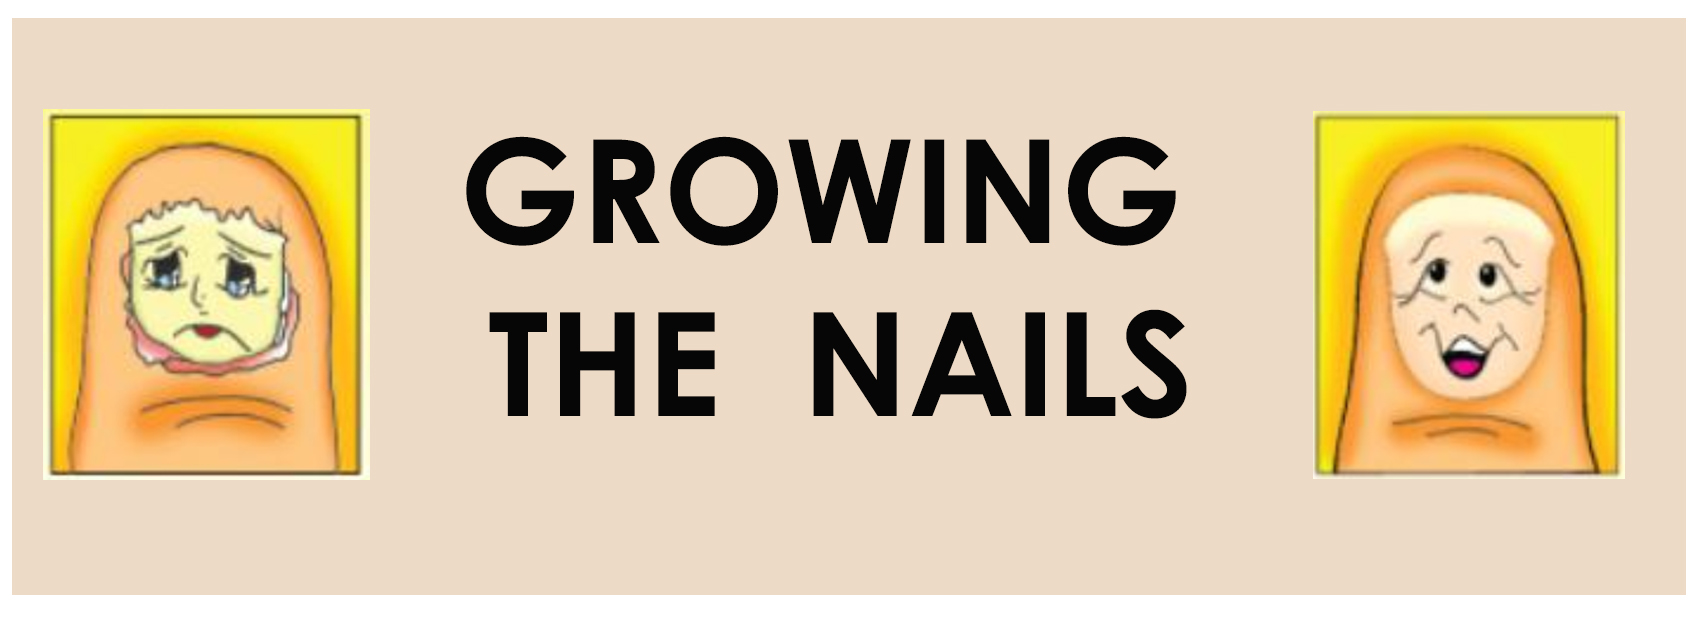 growing-the-nails-orofacial-myology